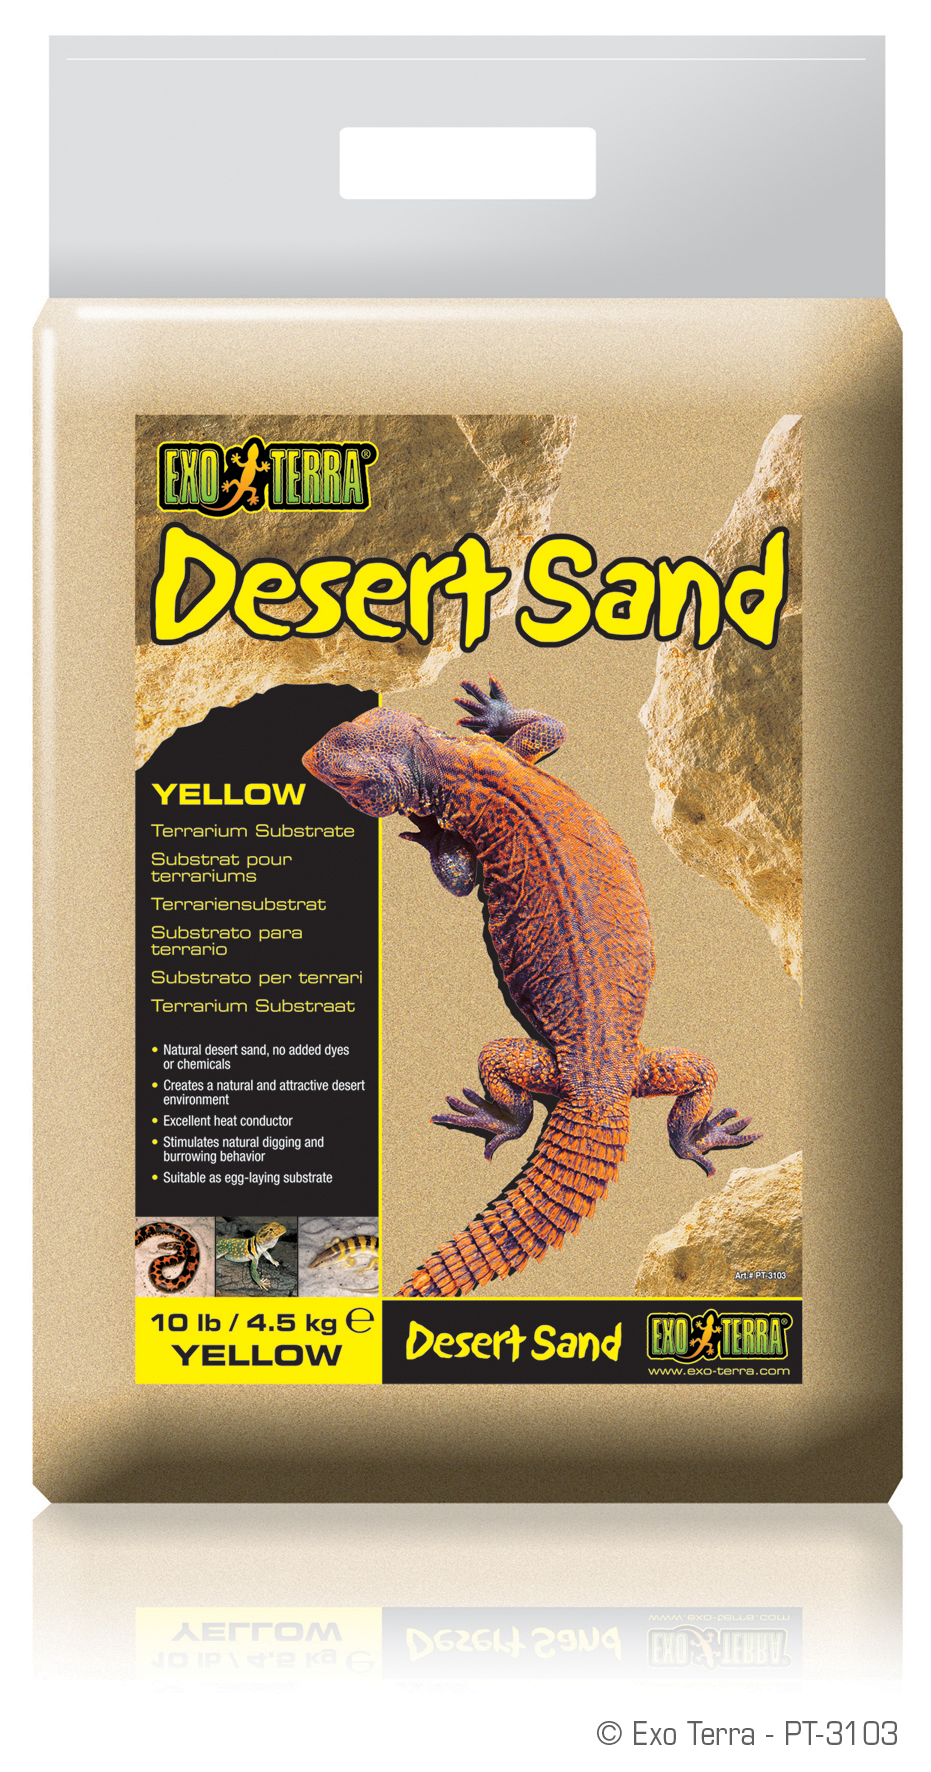 http://www.exo-terra.com/download/high_res/products/images/PT3103_Desert_Sand_Yellow_Packaging.jpg